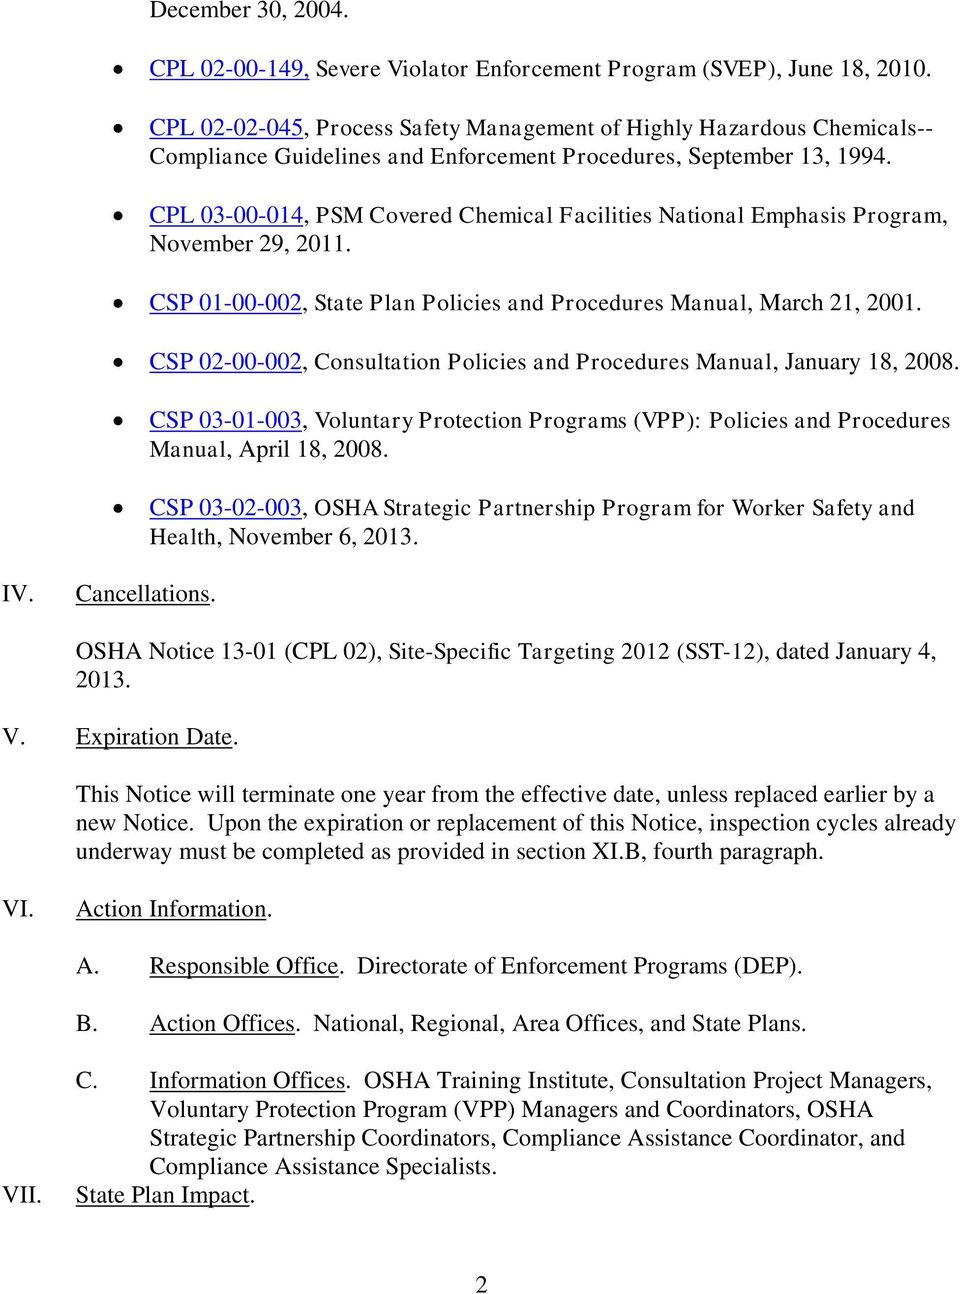 CPL 03-00-014, PSM Covered Chemical Facilities National Emphasis Program, November 29, 2011. CSP 01-00-002, State Plan Policies and Procedures Manual, March 21, 2001.